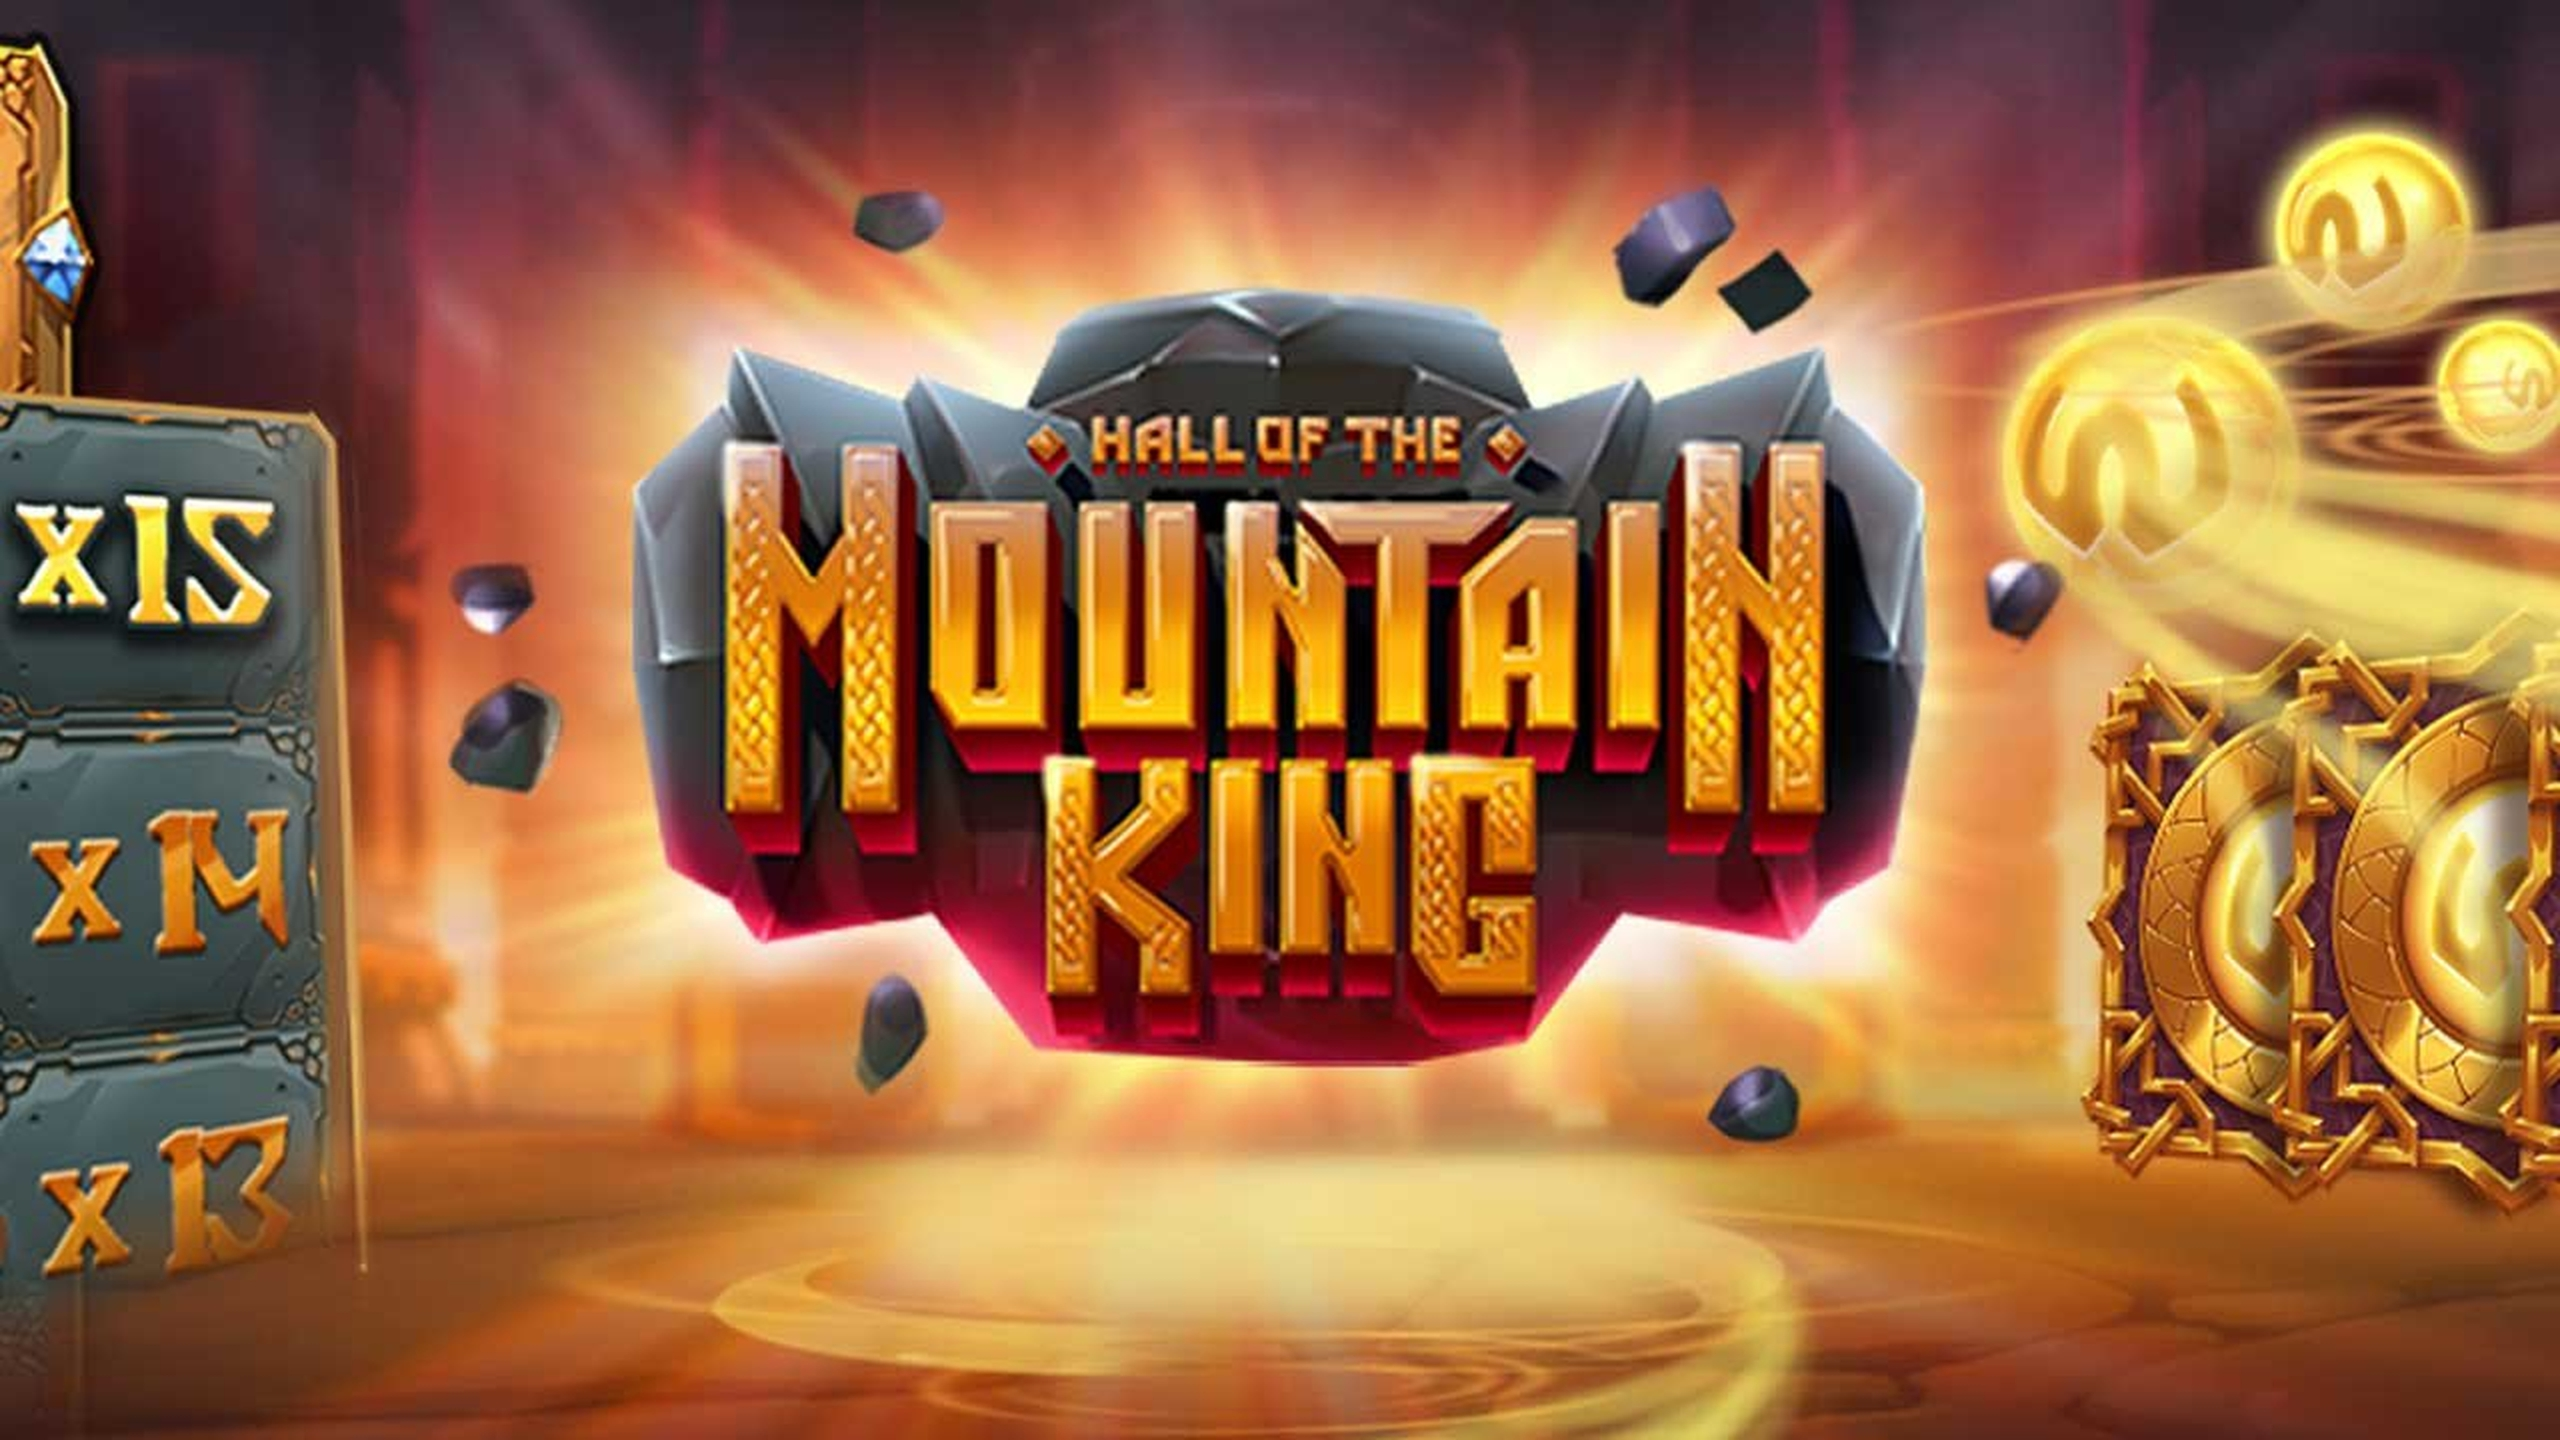 The Hall of the Mountain King Online Slot Demo Game by Quickspin